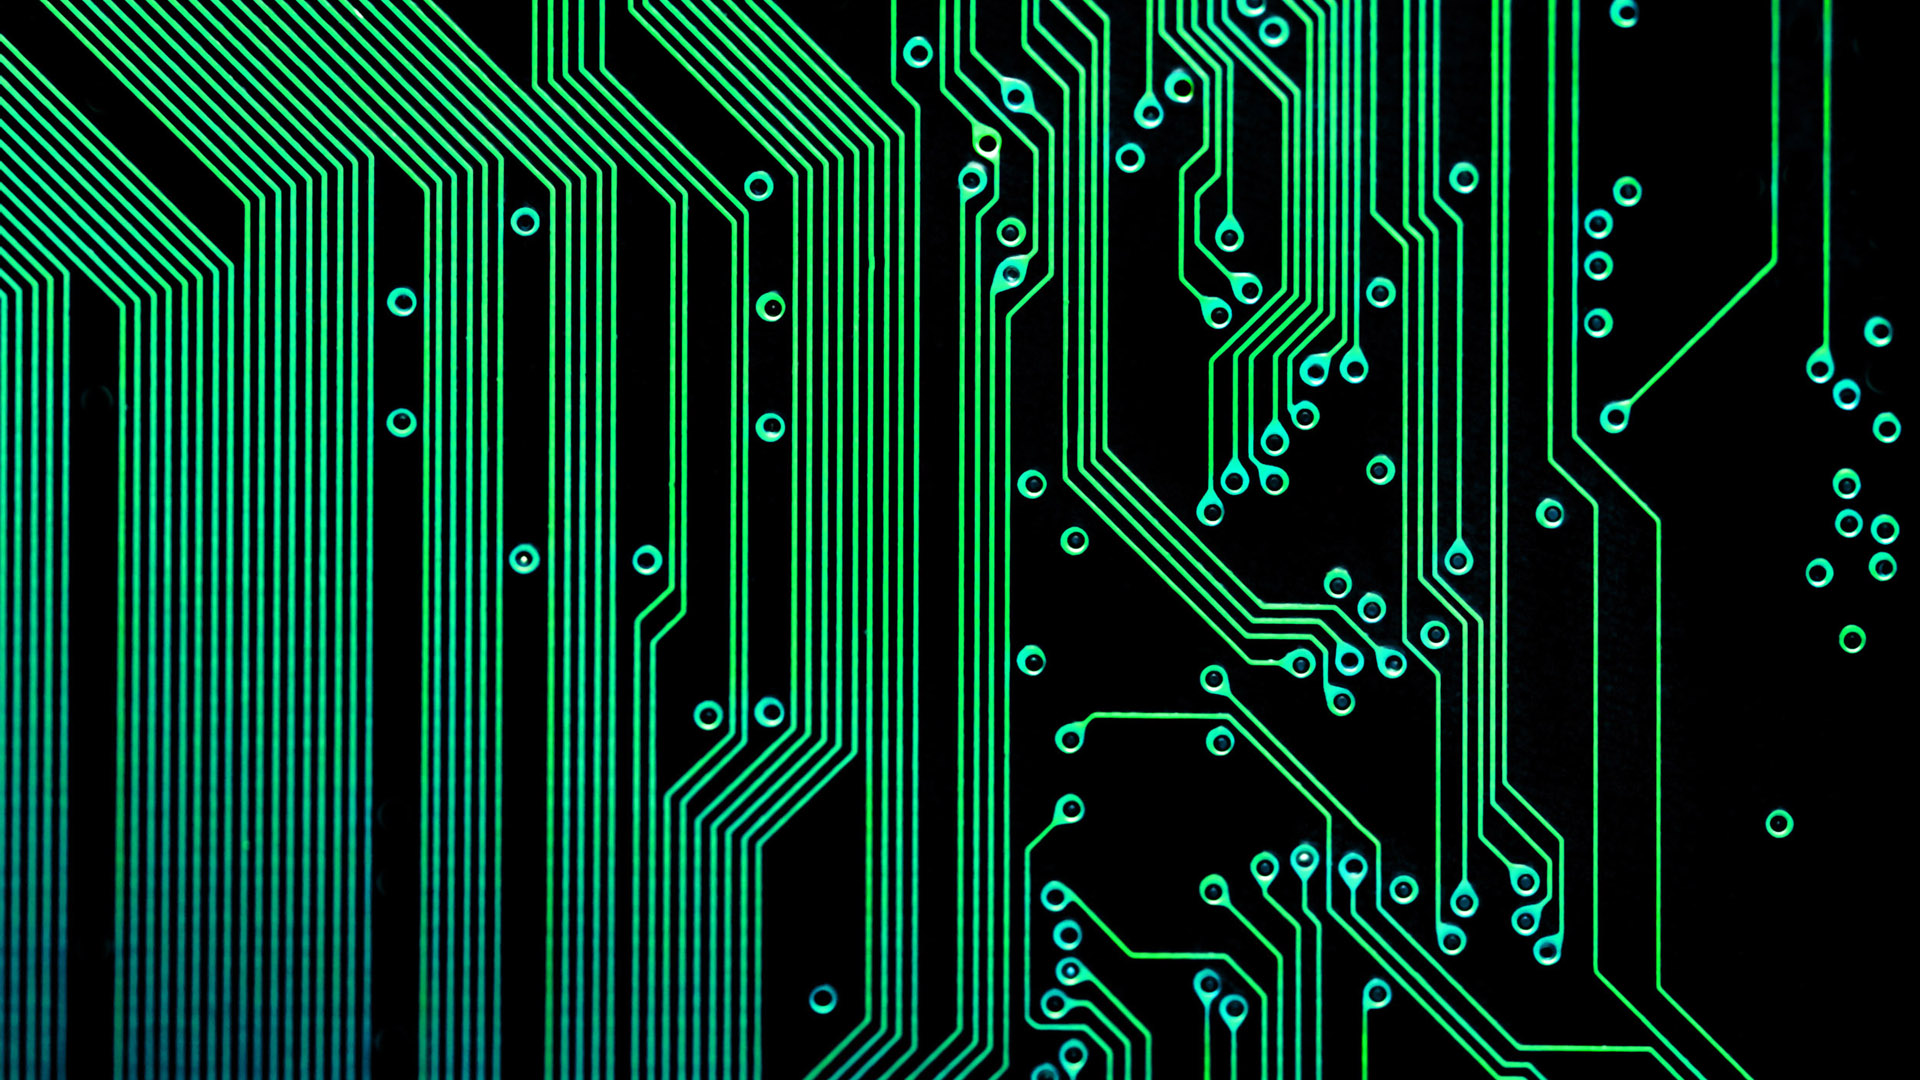 Free Download Gallery For Digital Circuits Wallpapers 1920x1080 For Your Desktop Mobile Tablet Explore 48 Circuits Wallpaper Circuit Board Wallpaper For Bedroom Electronic Circuit Wallpaper Circuit Board Desktop Wallpaper